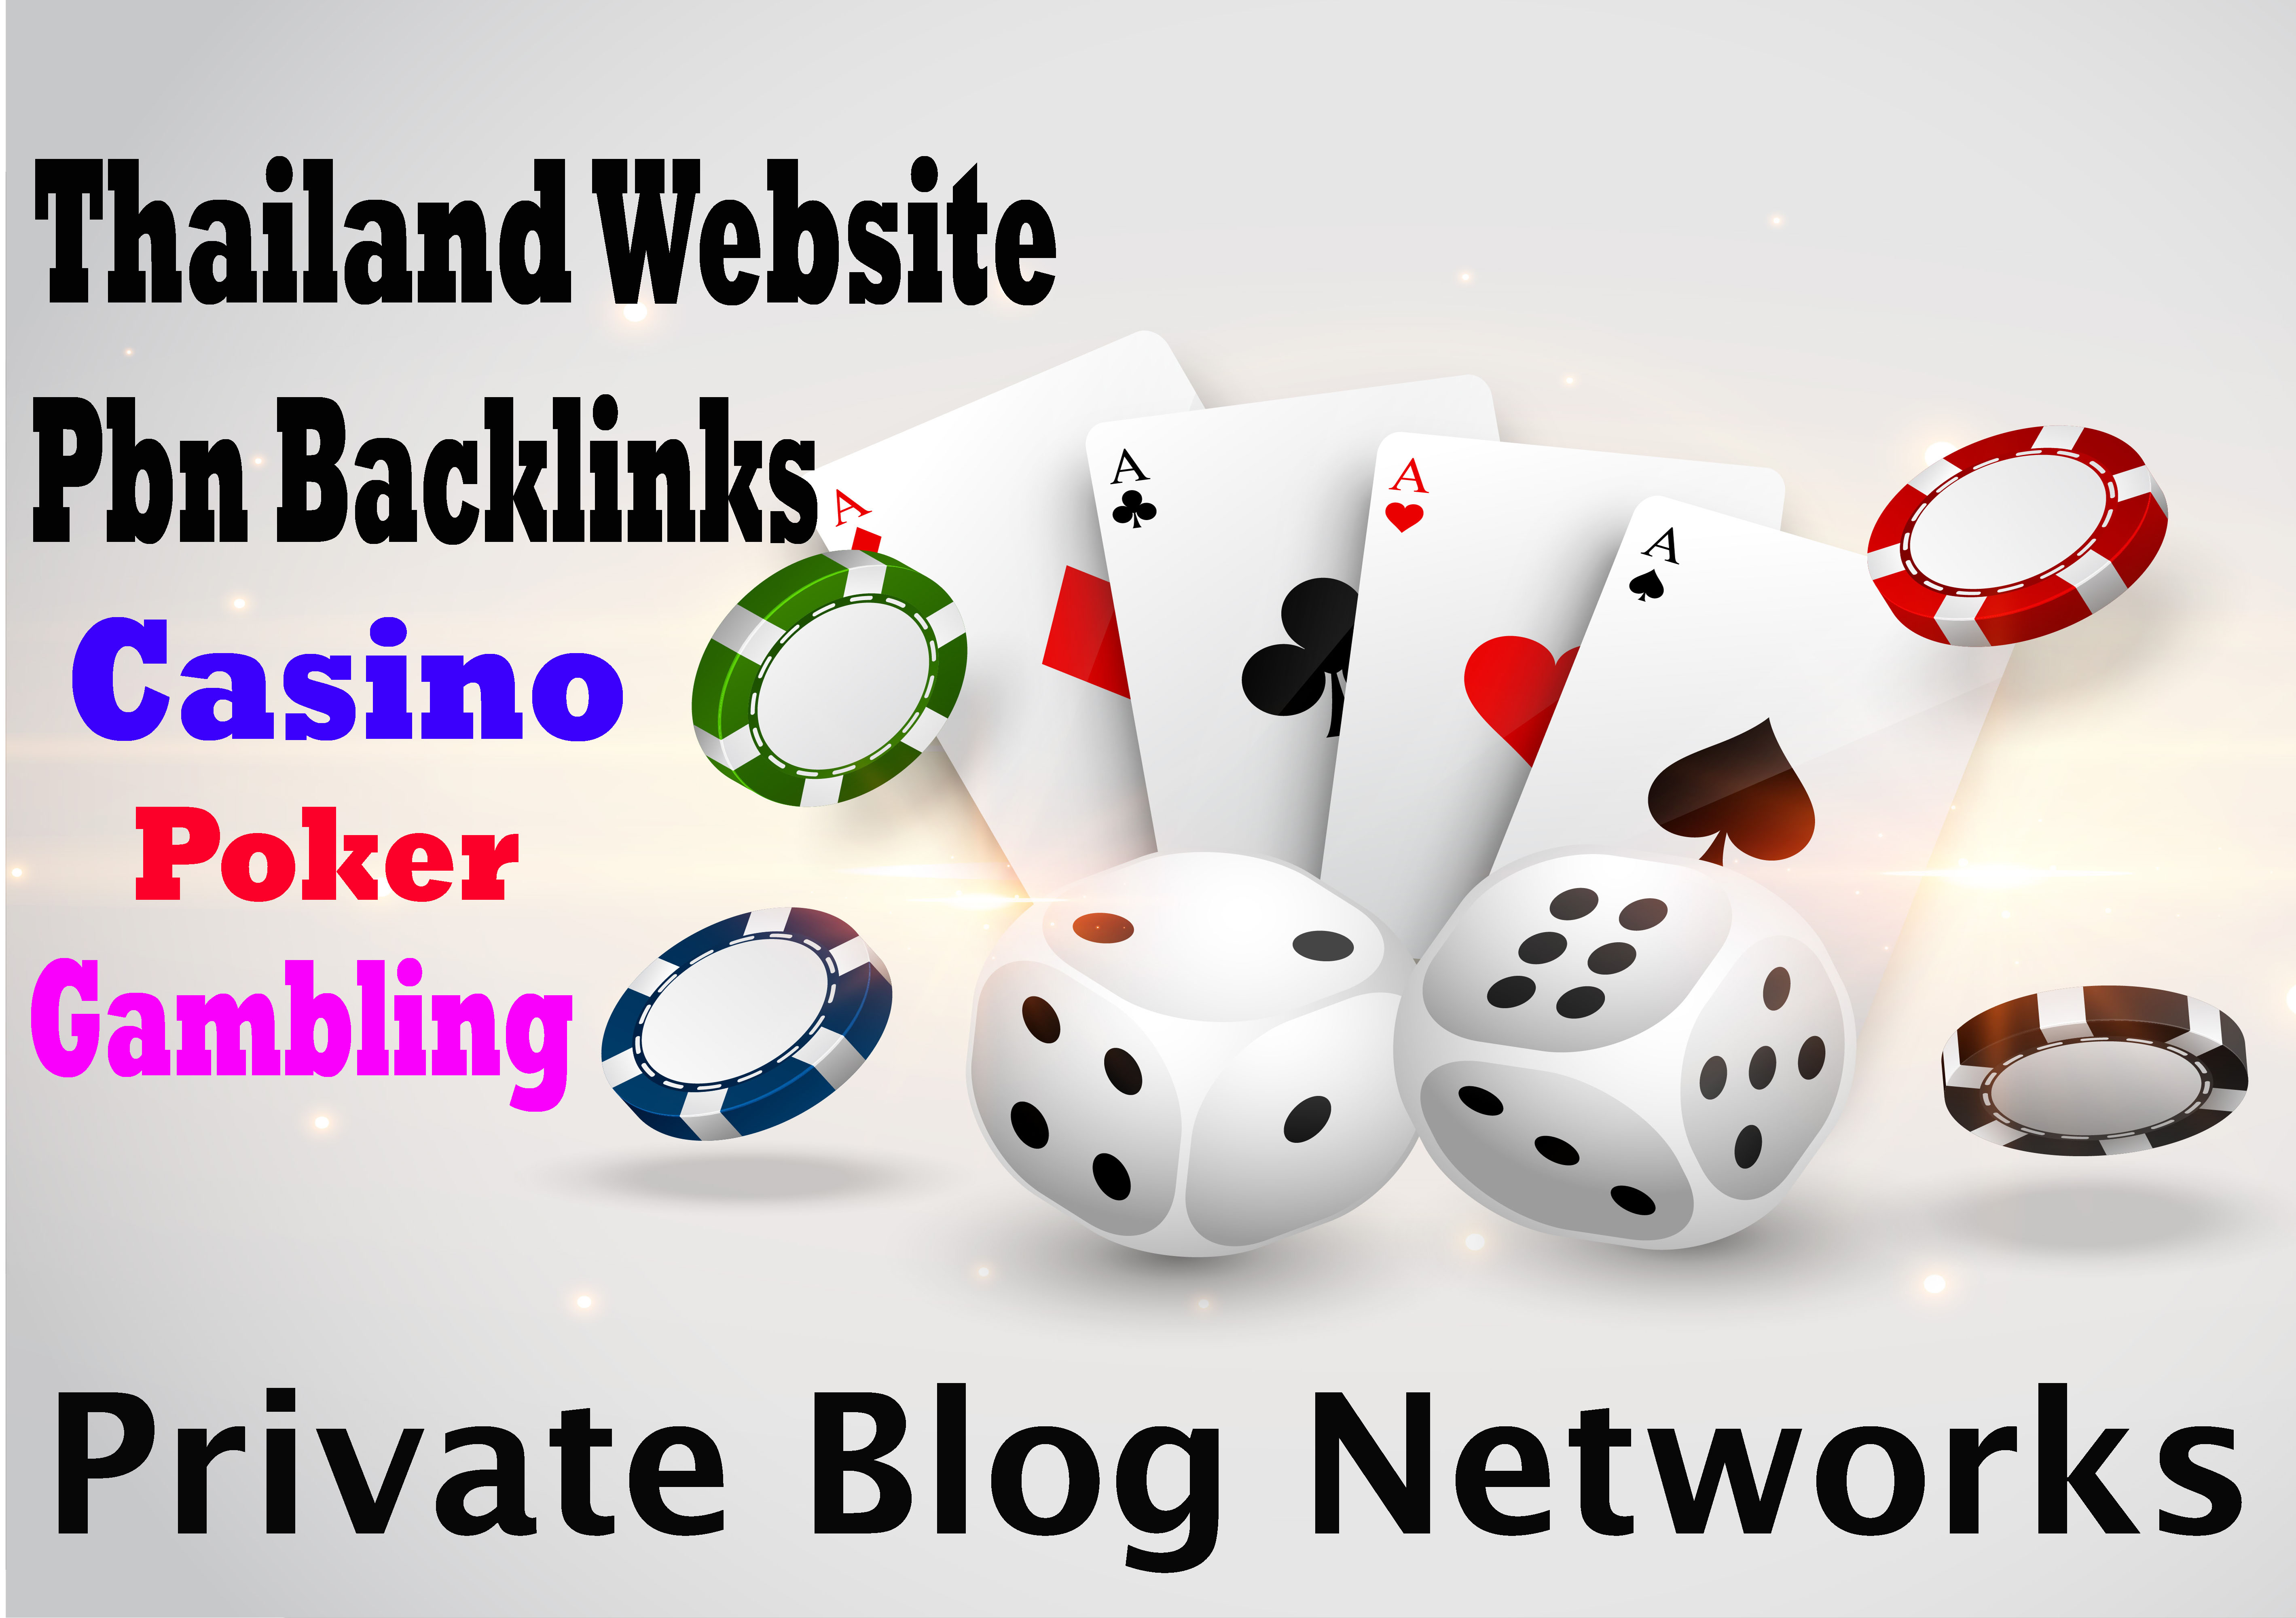 Casino/ Poker/ Gambling Sites 1000 Pbn Backlinks All Unique Domains